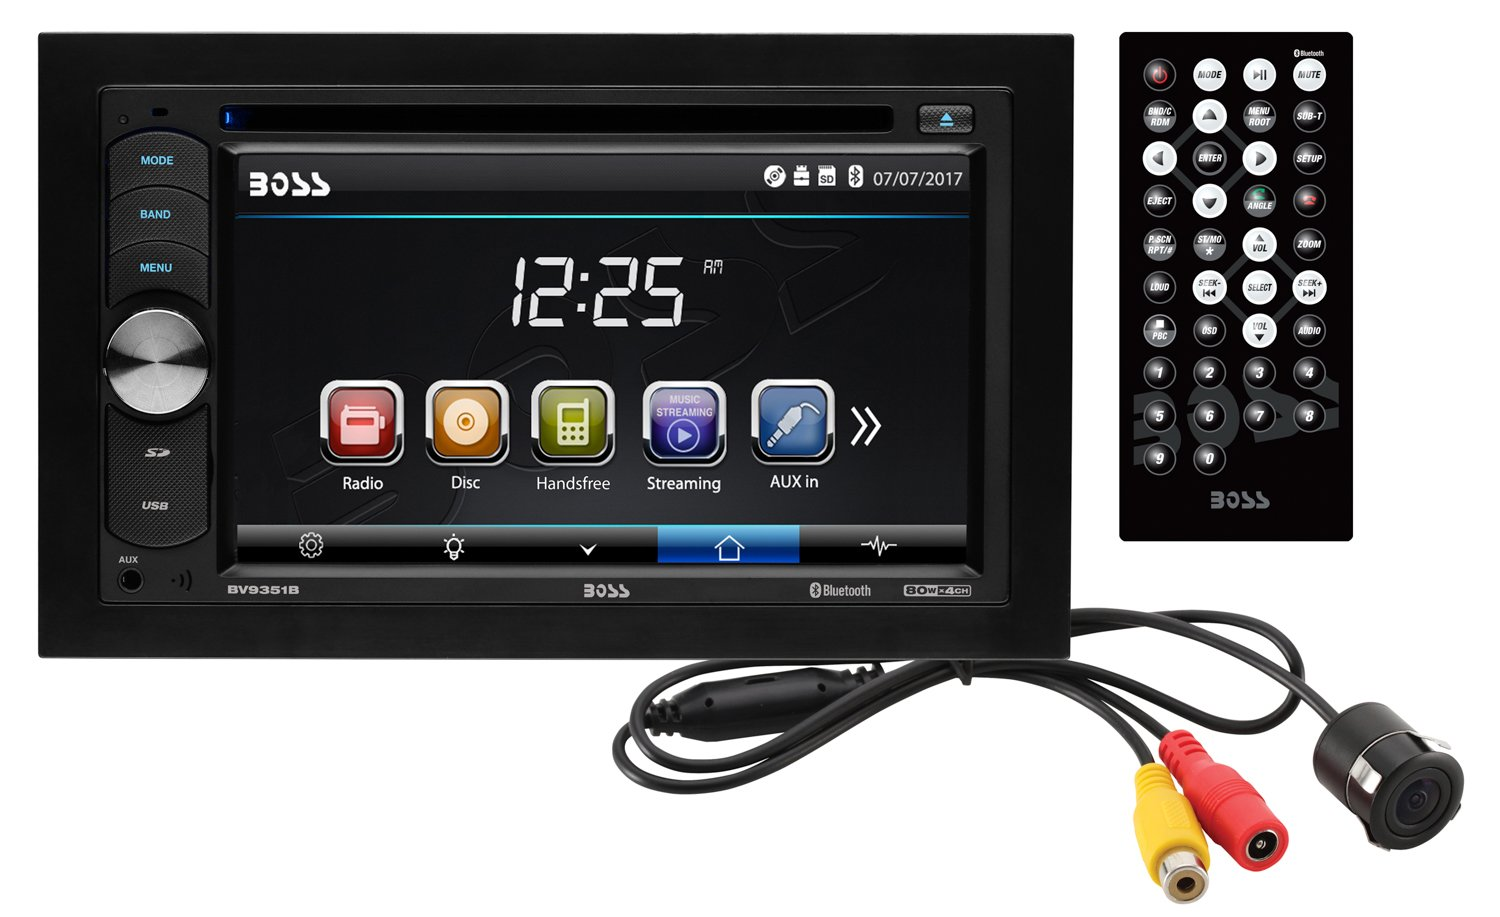 BOSS Audio BVB9351RC Double Din, Touchscreen, Bluetooth, DVD/CD/MP3/USB/SD AM/FM Car Stereo, 6.2 Inch Digital LCD Monitor, Wireless Remote Rearview Flush Mount Camera Included by BOSS Audio Systems